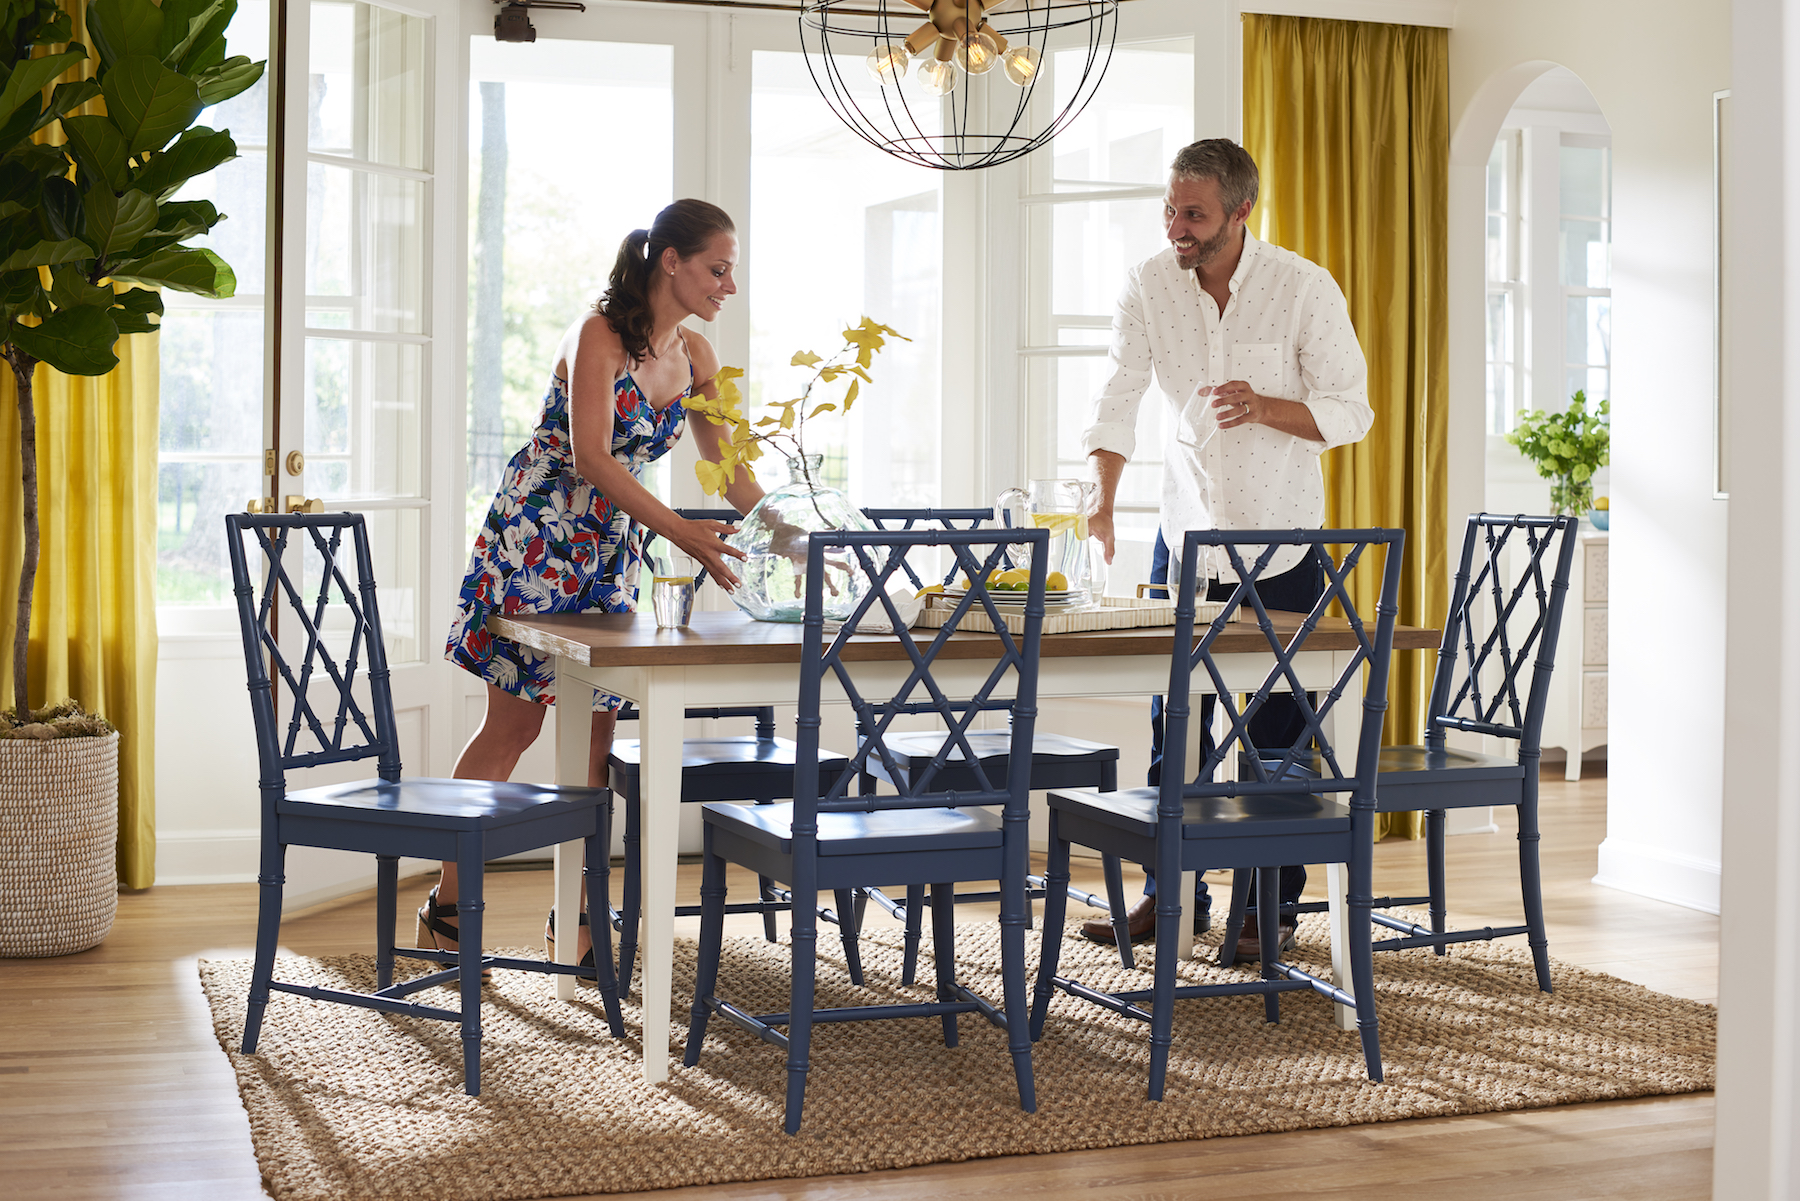 Young House Love Launched a Line of 'Life-Proof' Furniture at Wayfair—Top 4 Picks